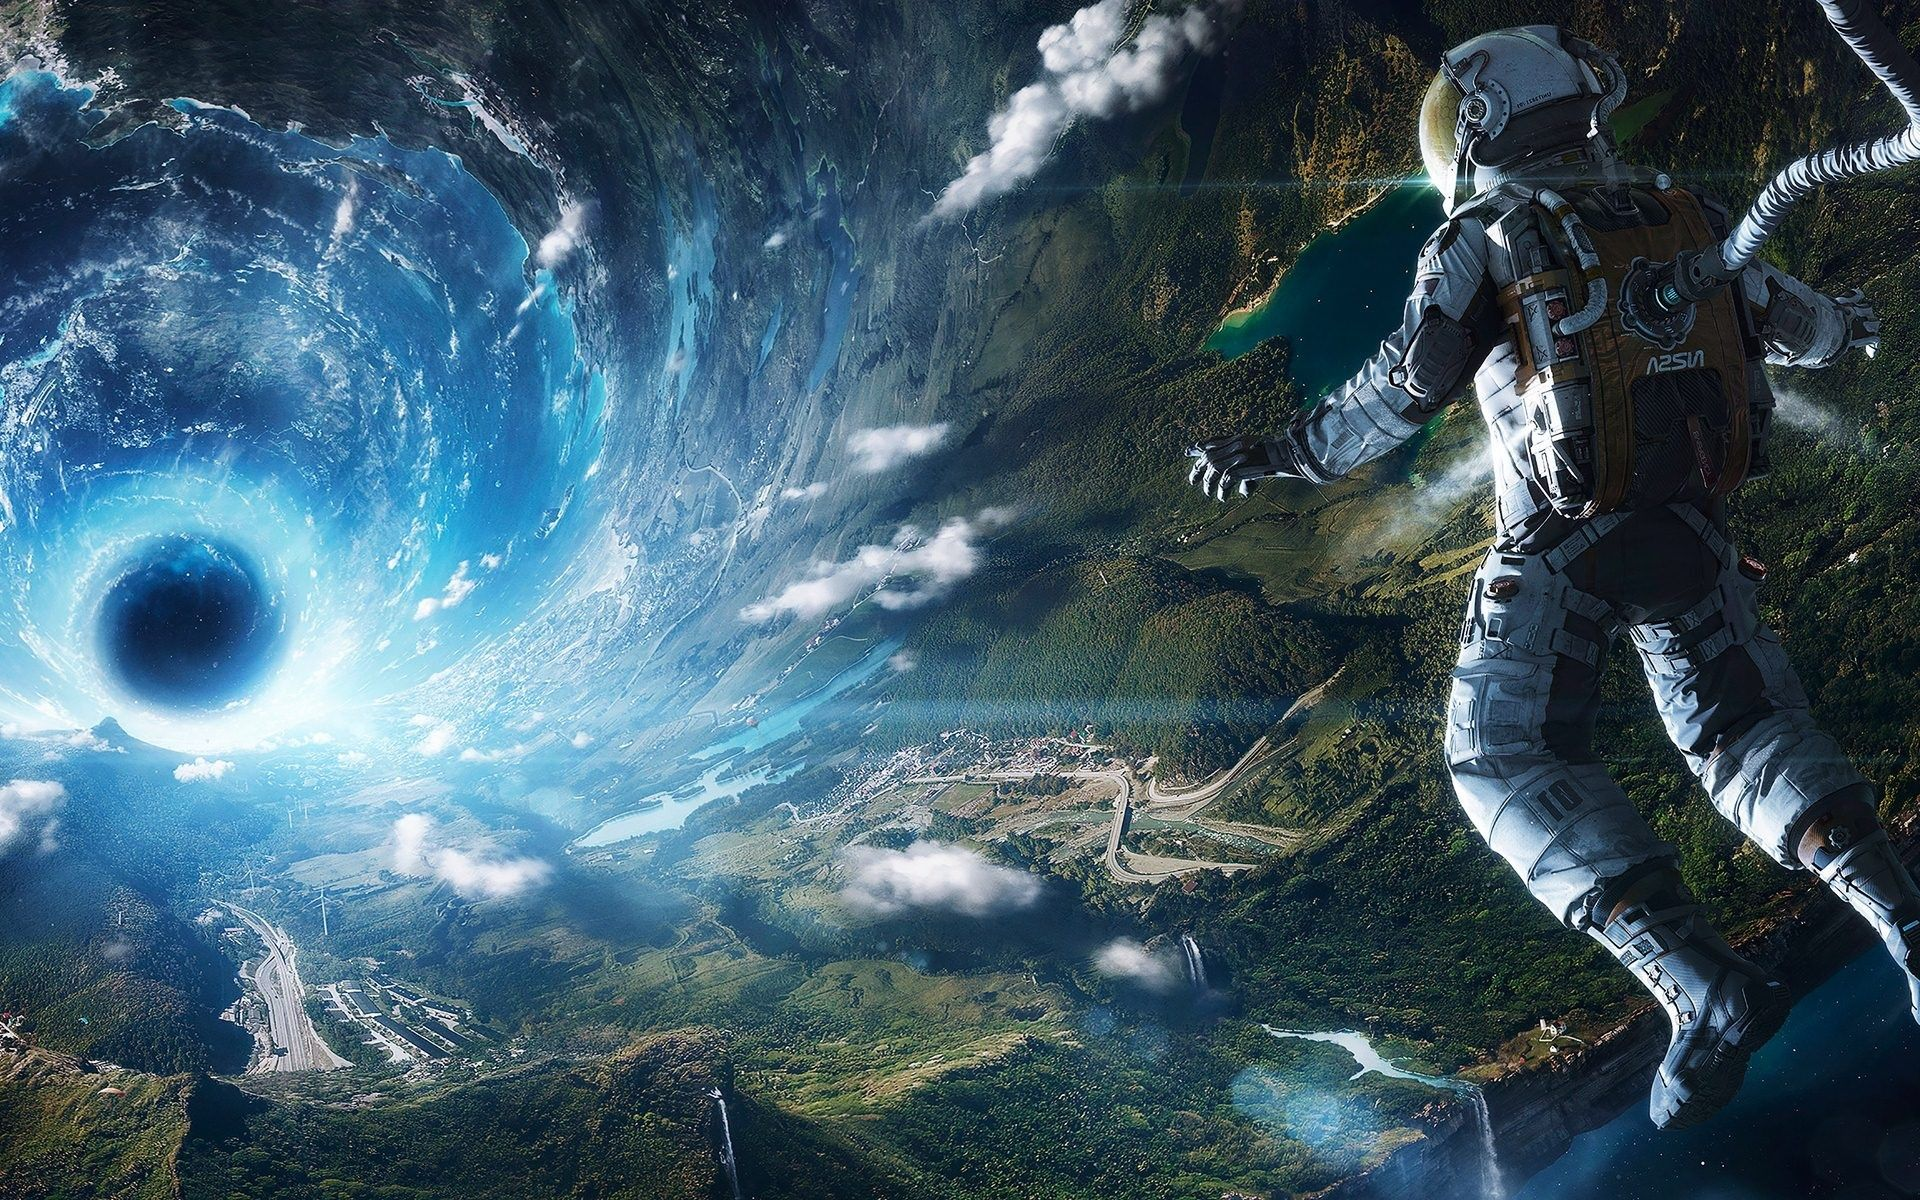 Space Screensavers And Backgrounds Free Wallpaper Space Astronaut Wallpaper Space Art